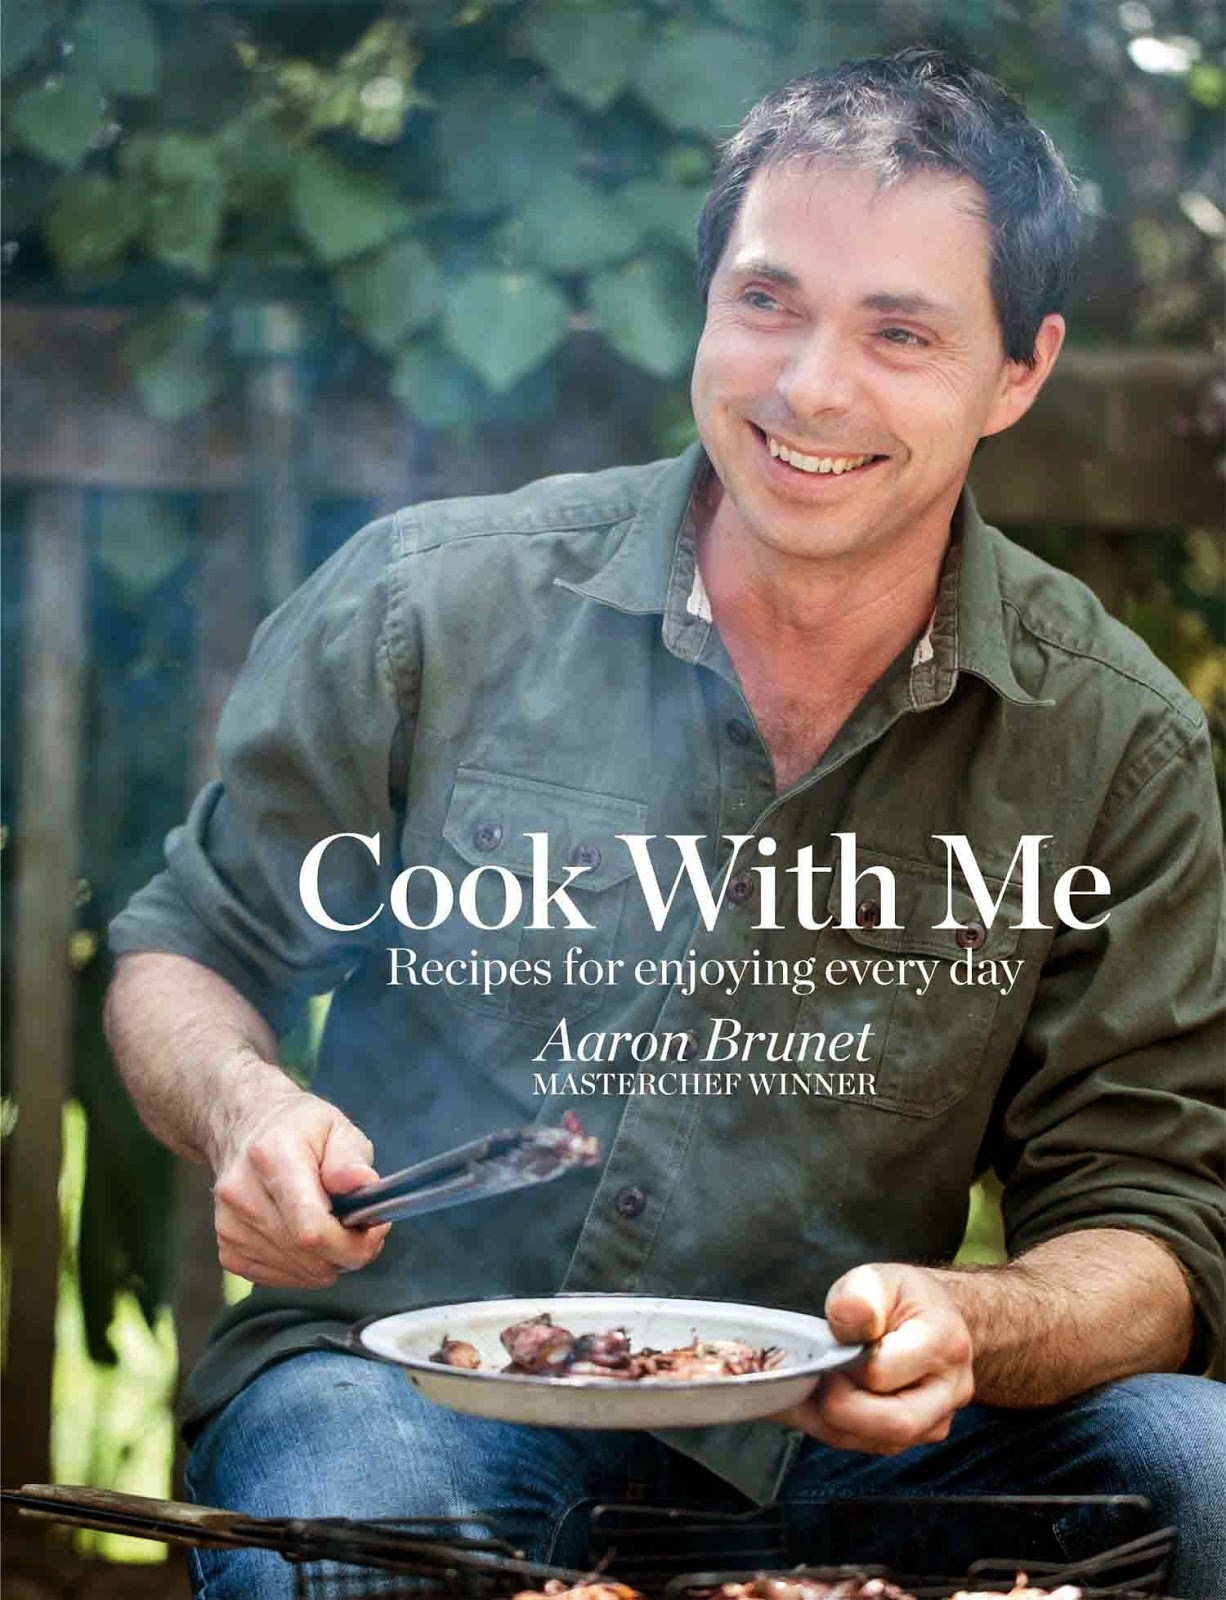 Cook With Me, a cookbook by Masterchef Aaron Brunet